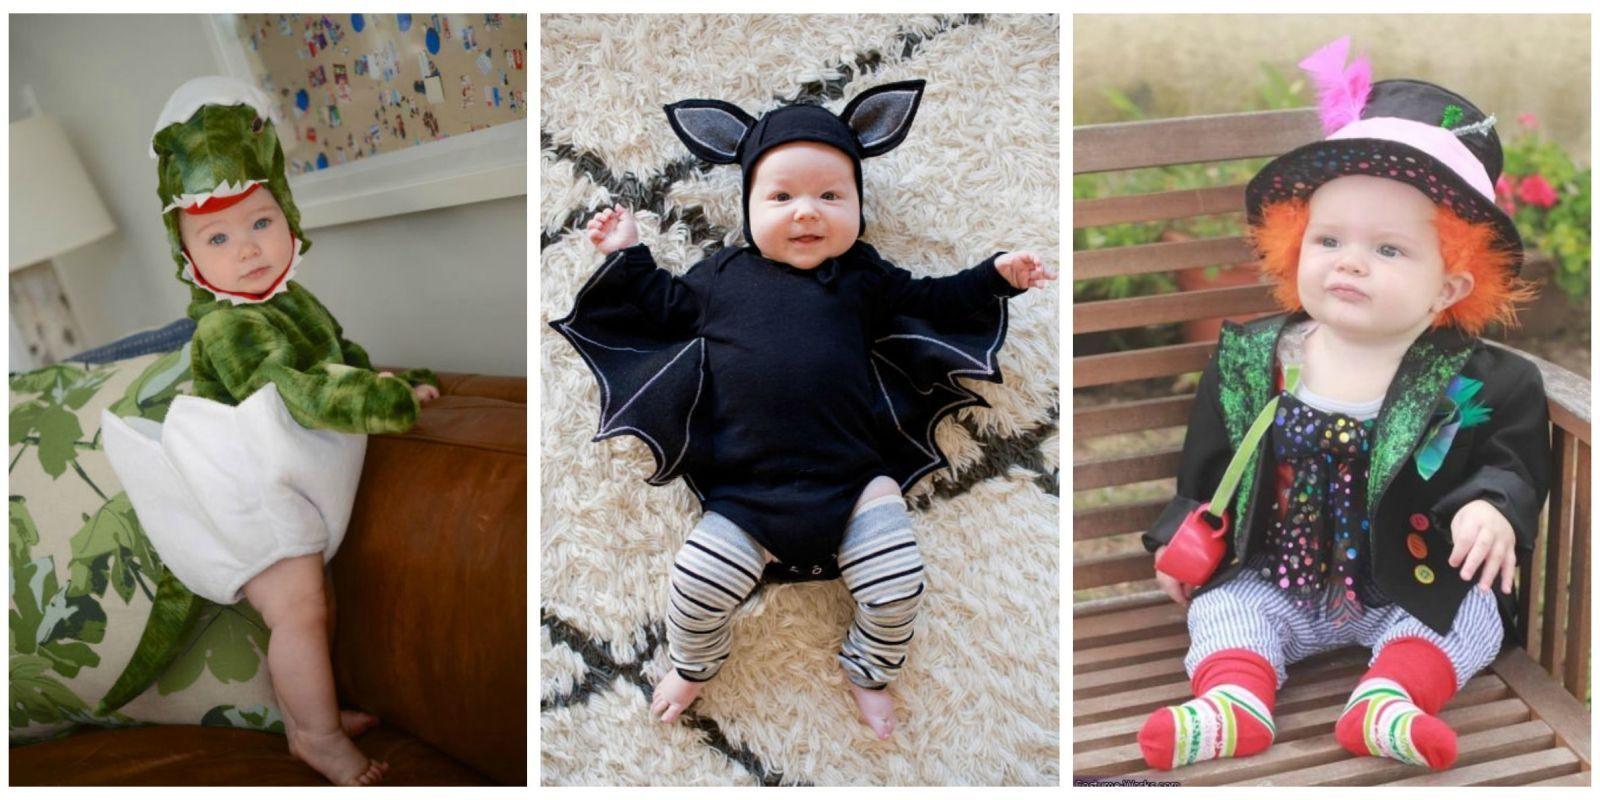 30 perfectly adorable halloween costumes for babies toddlers 30 perfectly adorable halloween costumes for babies toddlers solutioingenieria Images